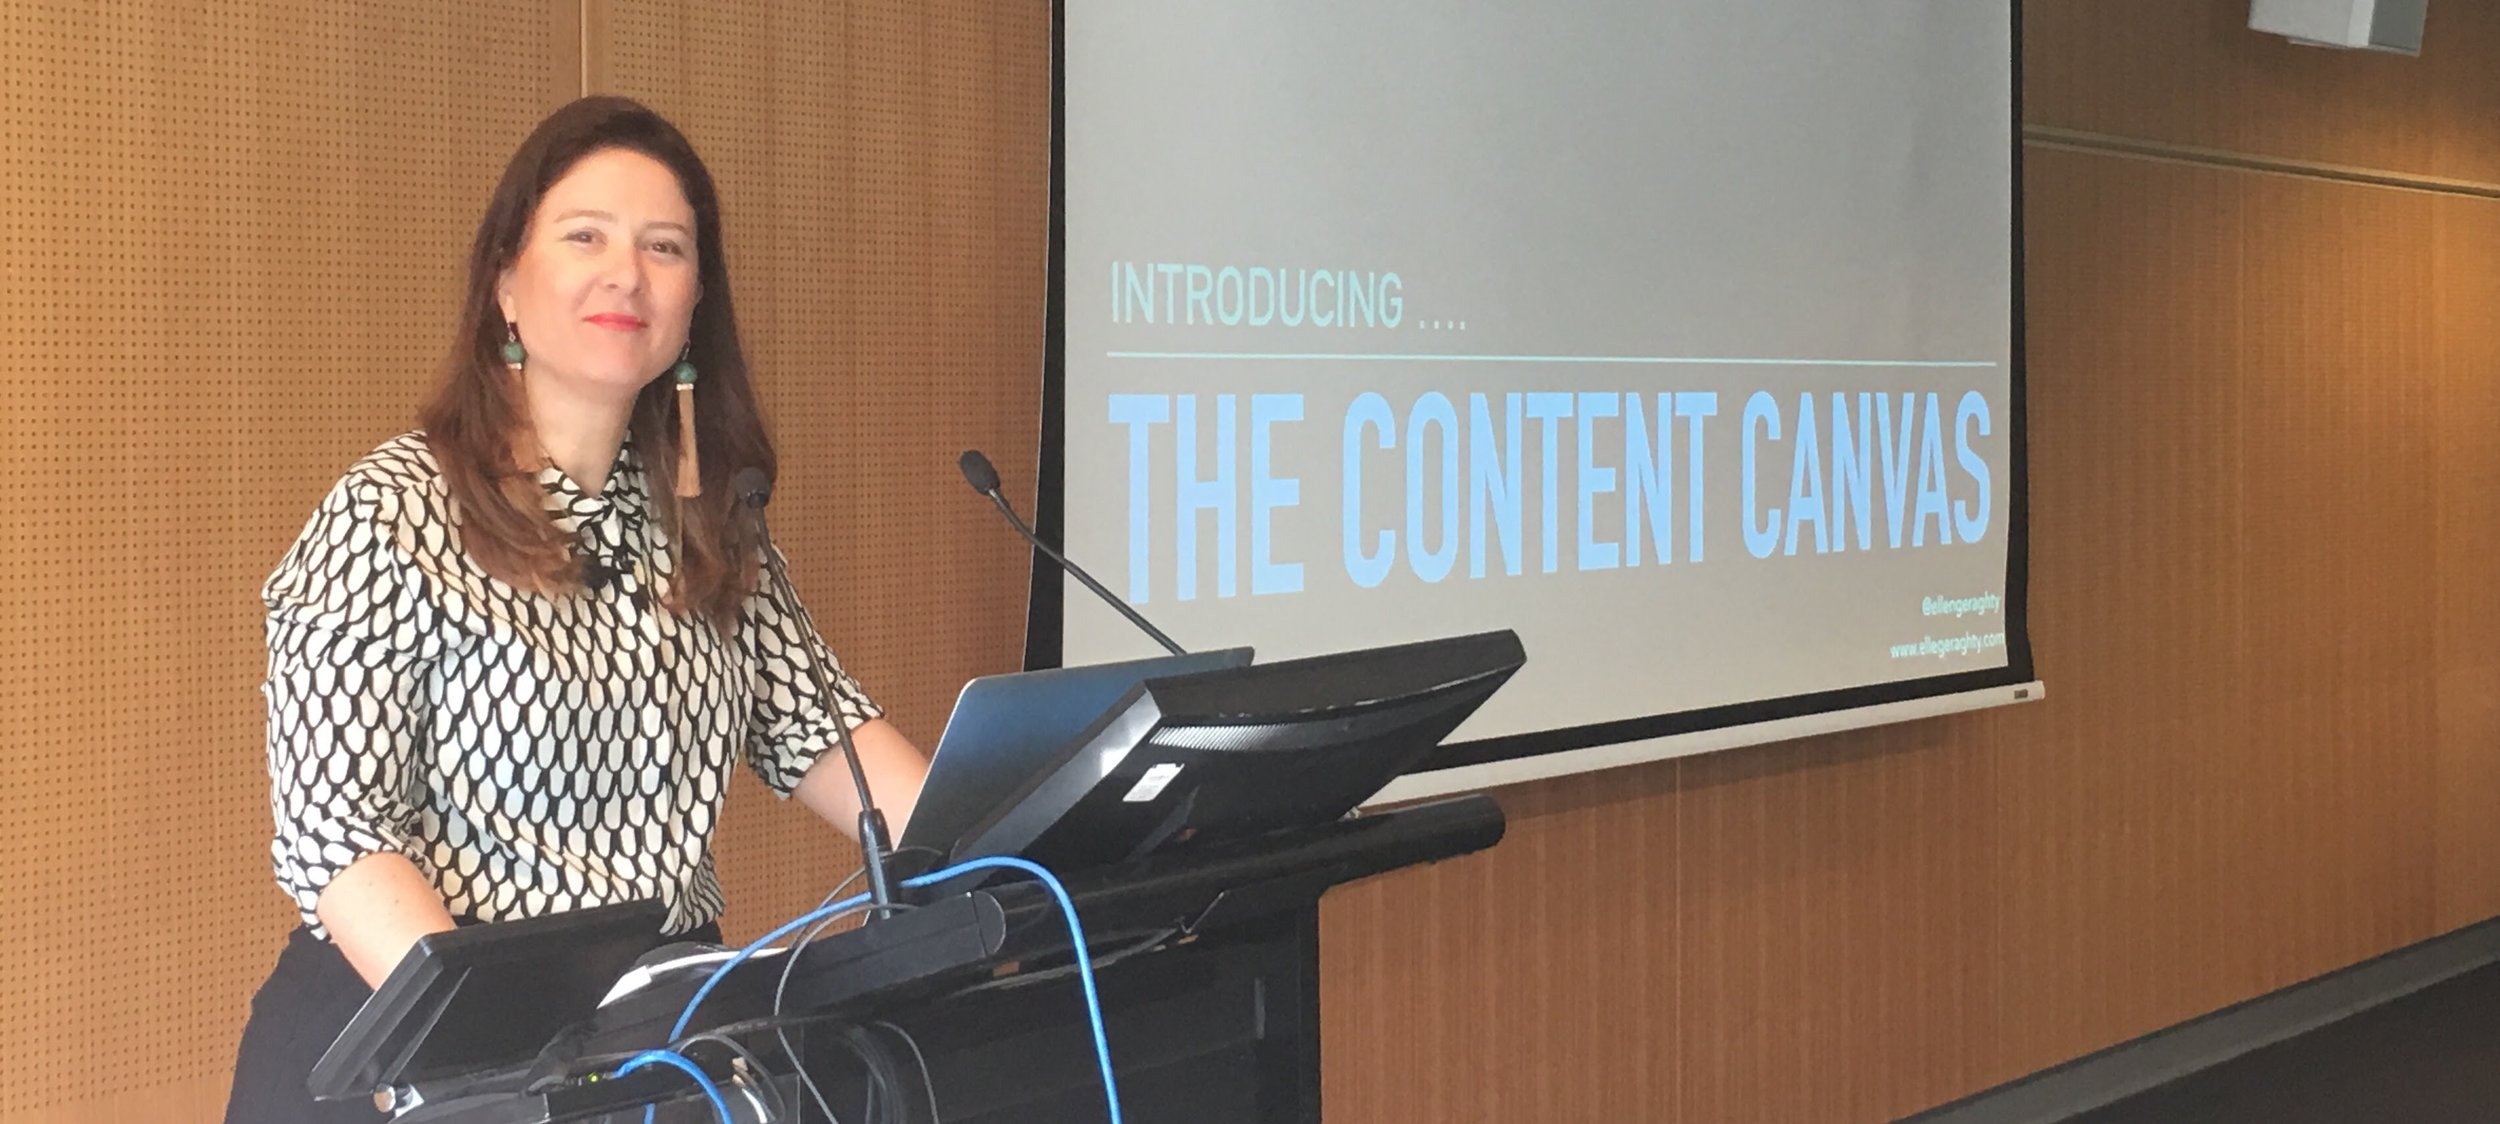 I first presented on the content canvas at CSFOrum16 in Melbourne in October 2016